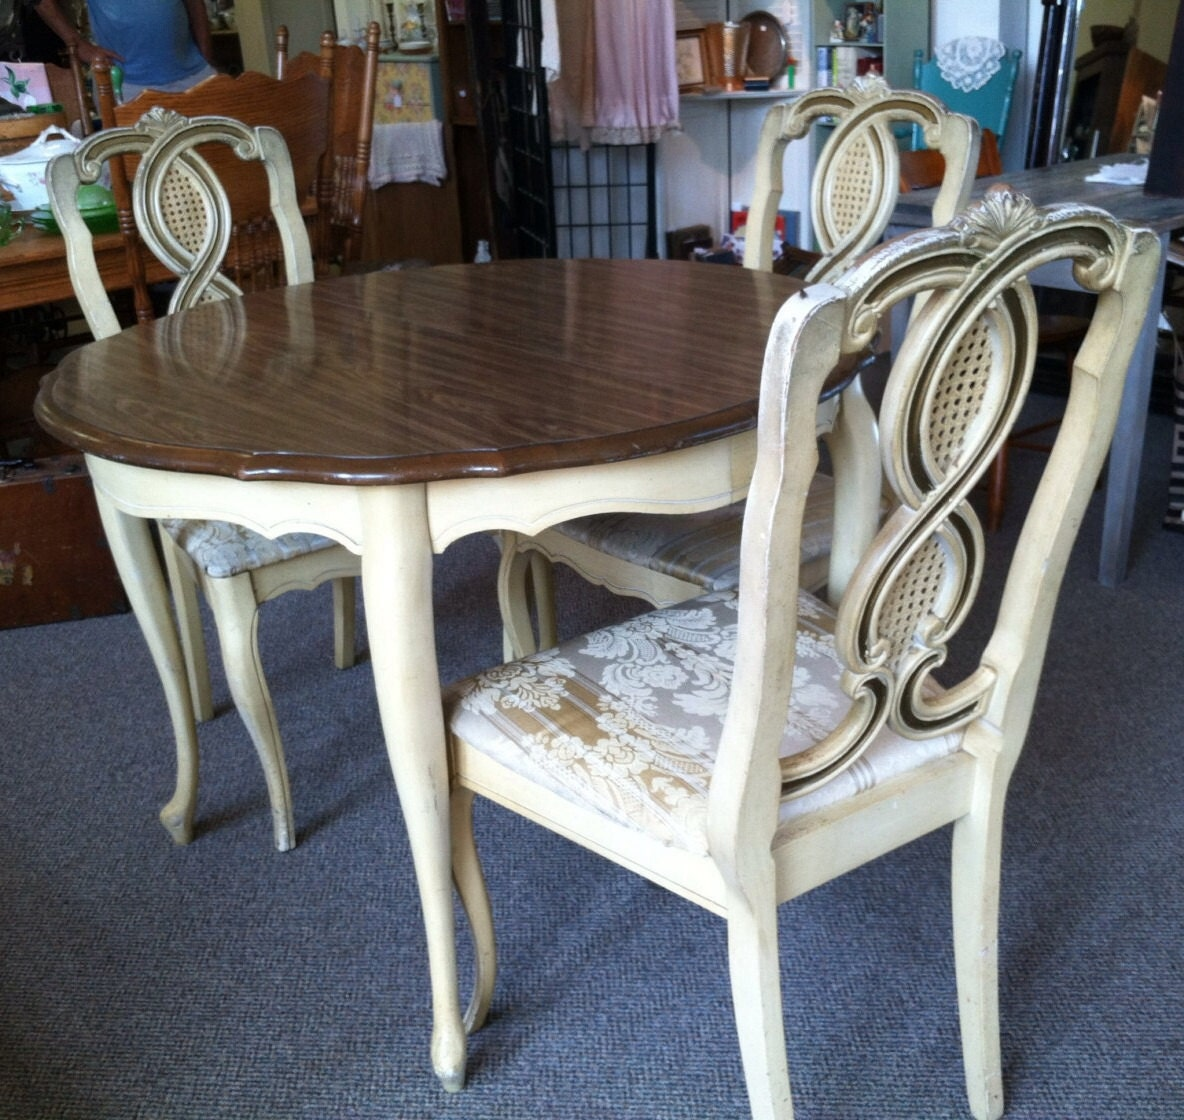 French Provincial Dining Room Set in white brown